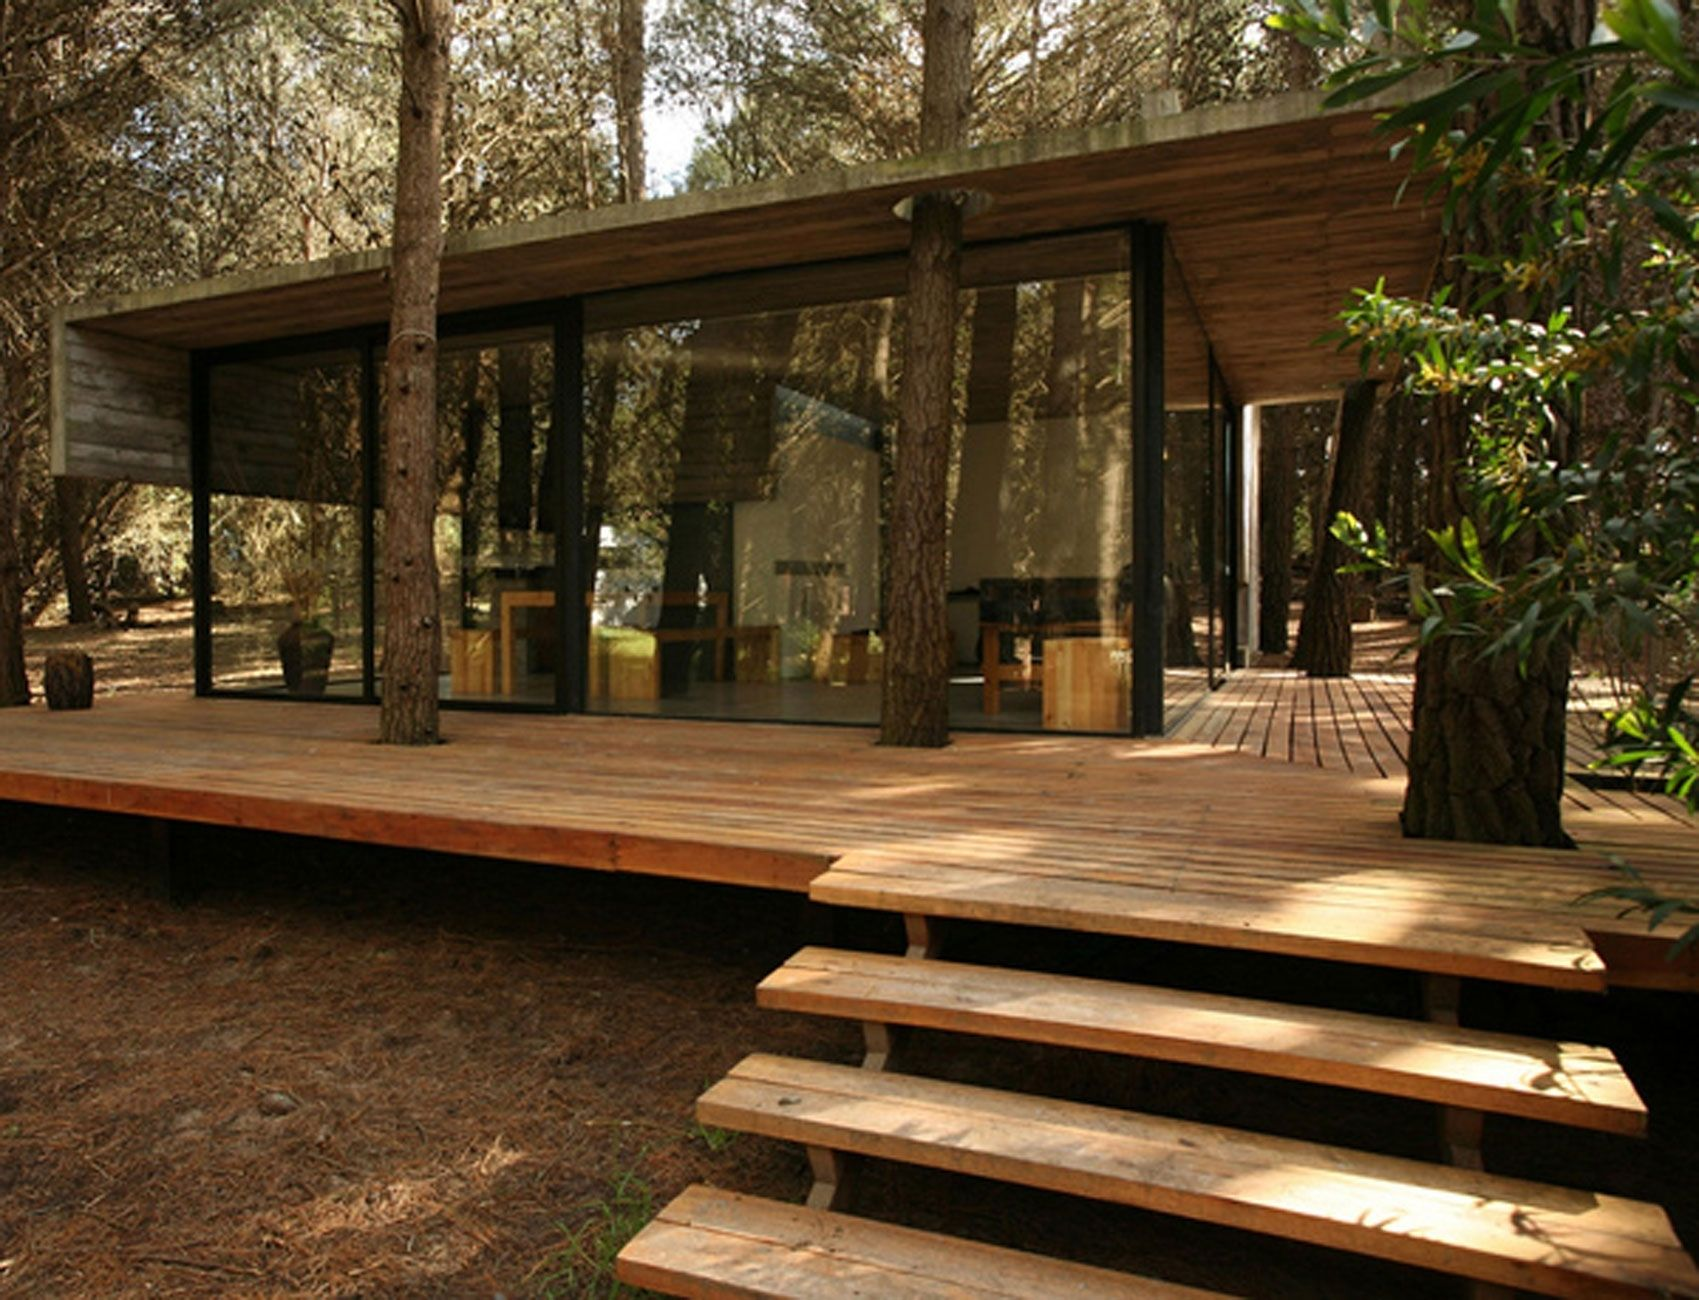 Contemporary and unique wooden house design ideas beautiful amazing